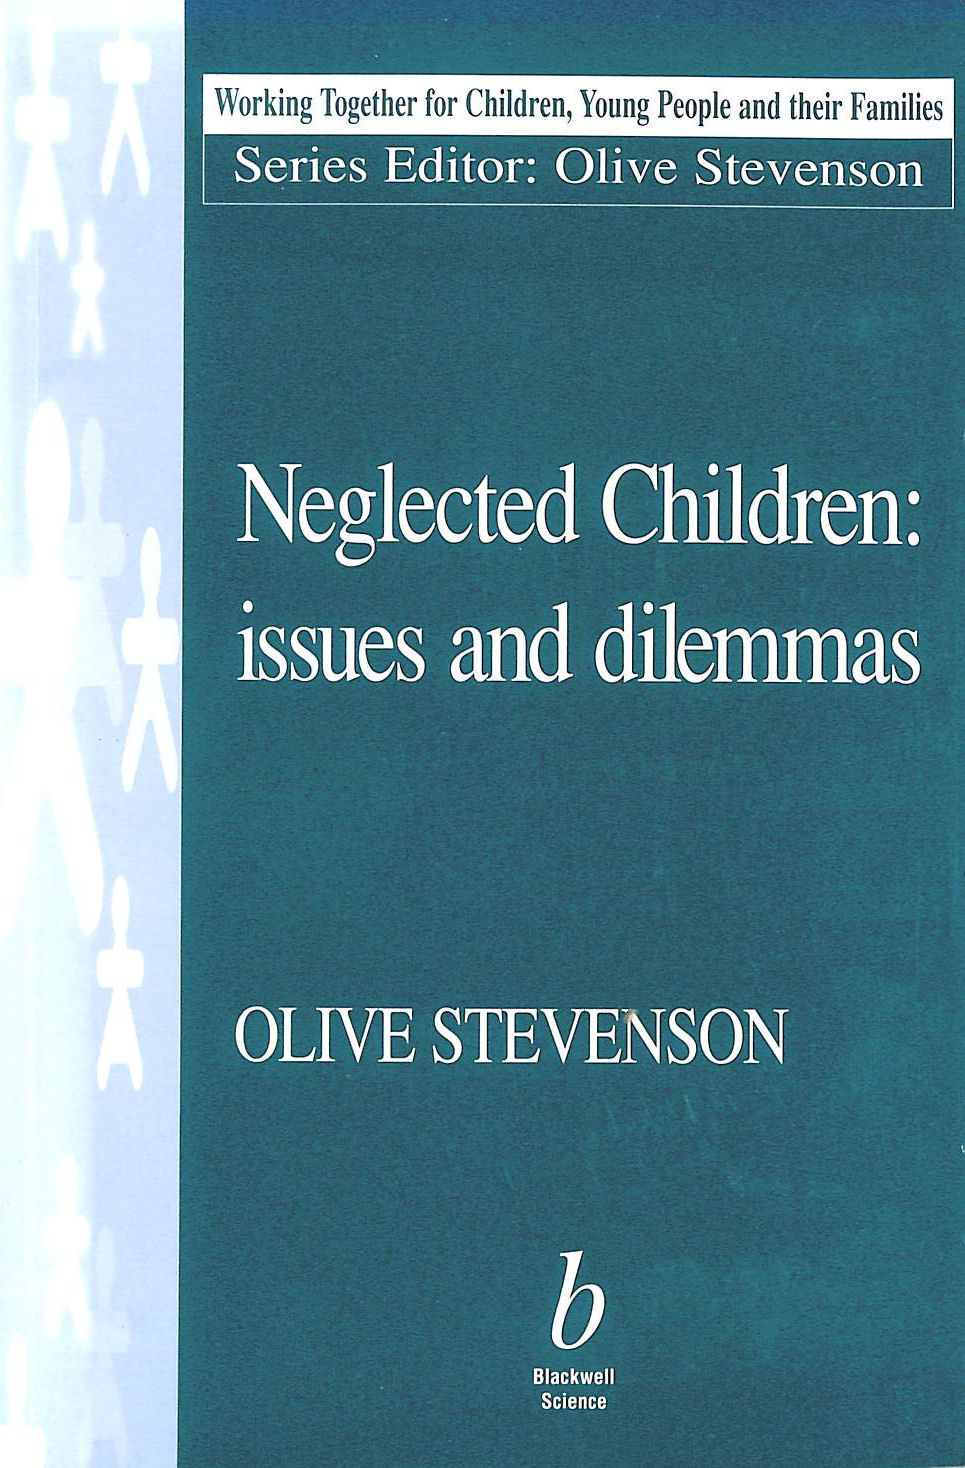 Image for Neglected Children: Issues and Dilemmas (Working Together For Children, Young People And Their Families)